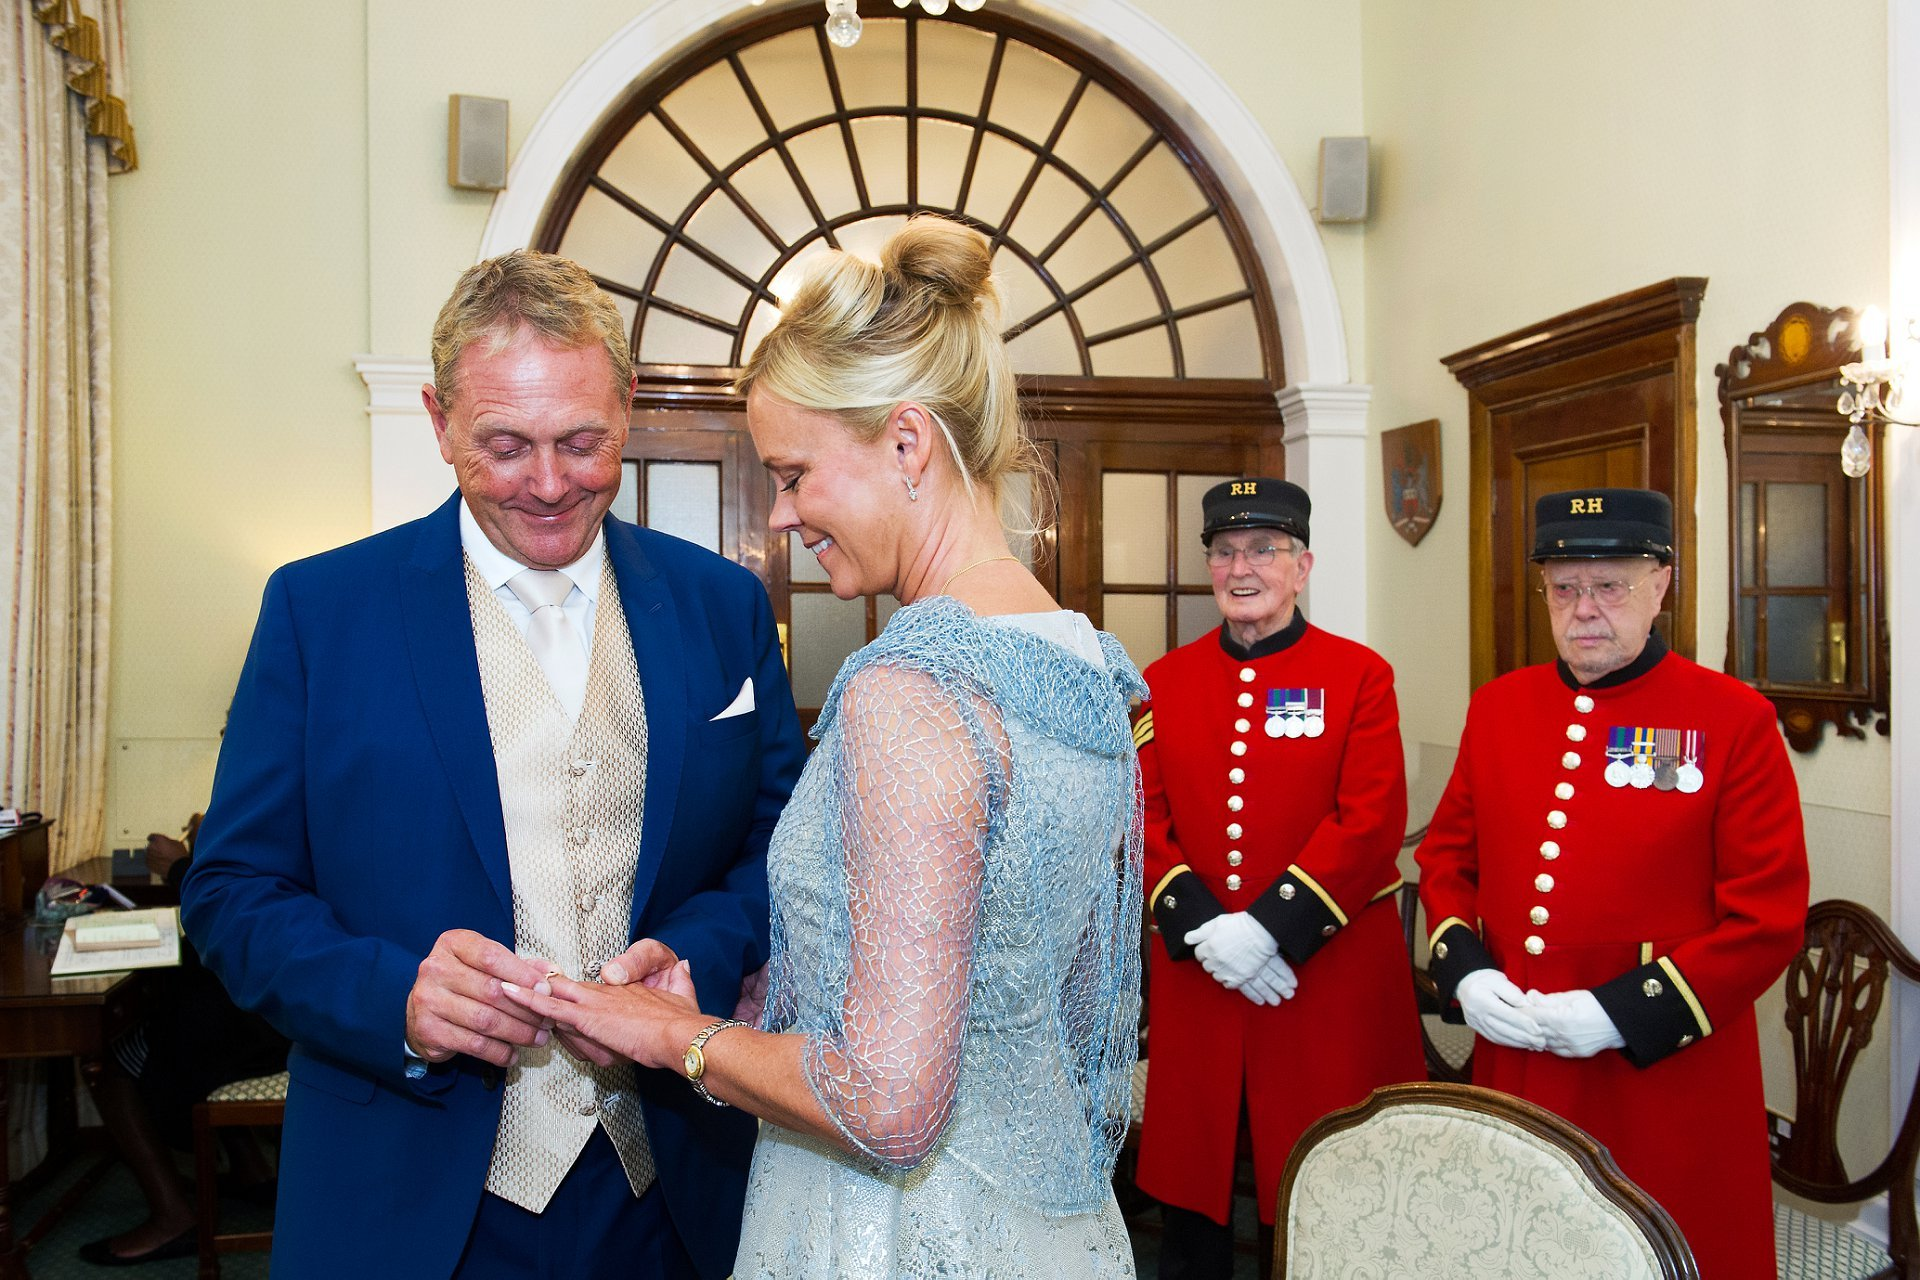 chelsea old town hall wedding photography showing a groom placing a ring on his bride's finger watched by two chelsea pensioners in the rossetti room